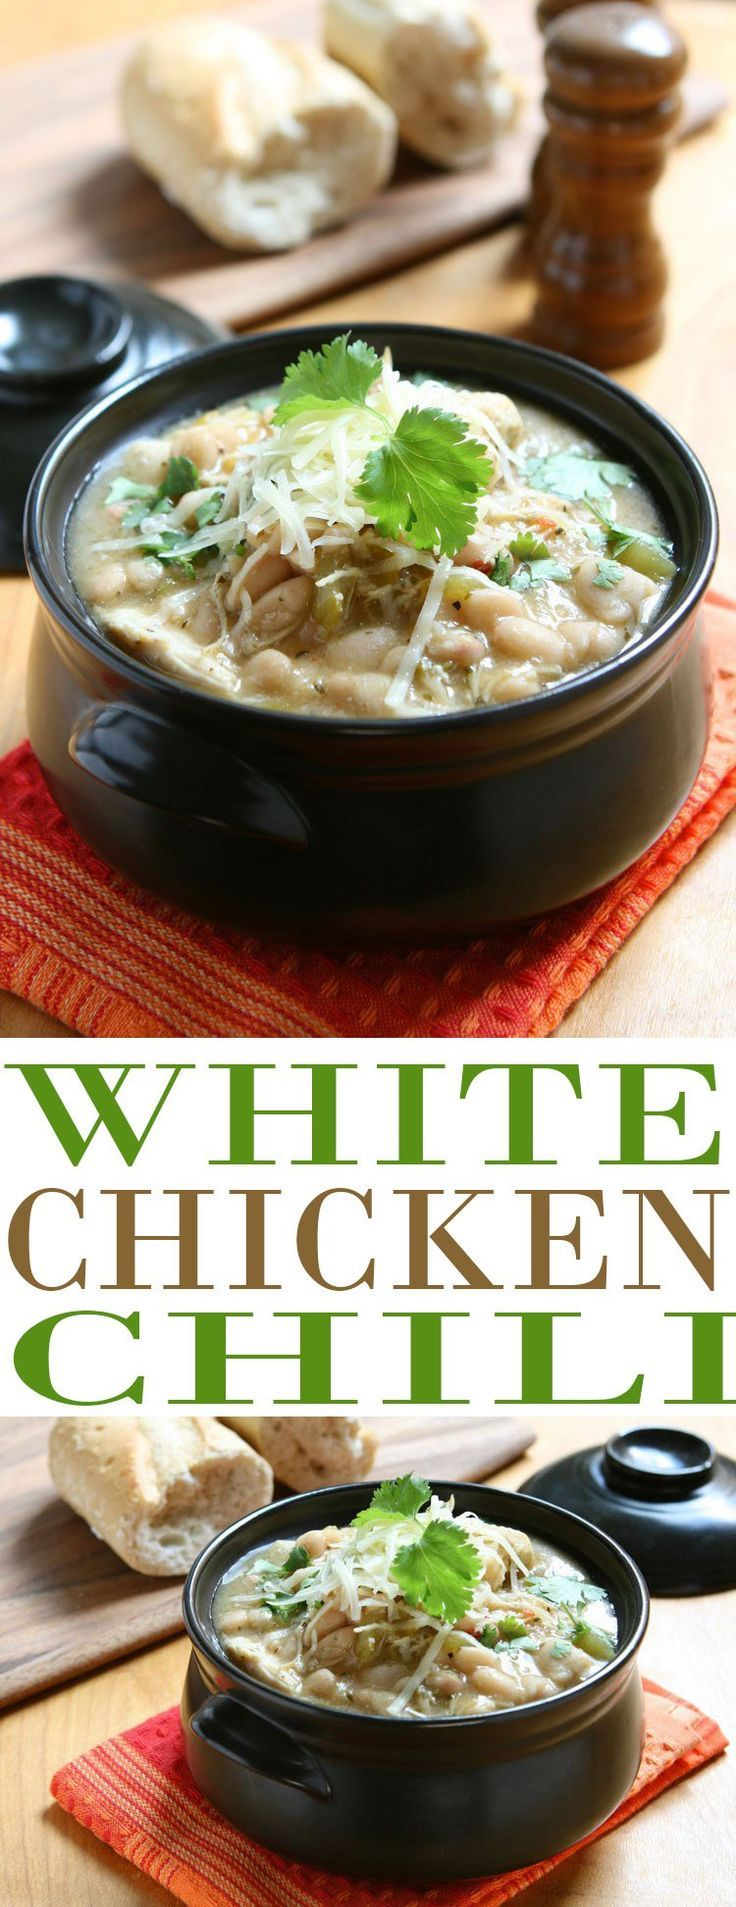 White Chicken Chili recipe is one of the best fall soup recipes (and chili recipes) we have. This flavorful white bean and chicken chili is so hearty. It is also the perfect way to use up Thanksgiving turkey leftovers. Substitute turkey for chicken and ma